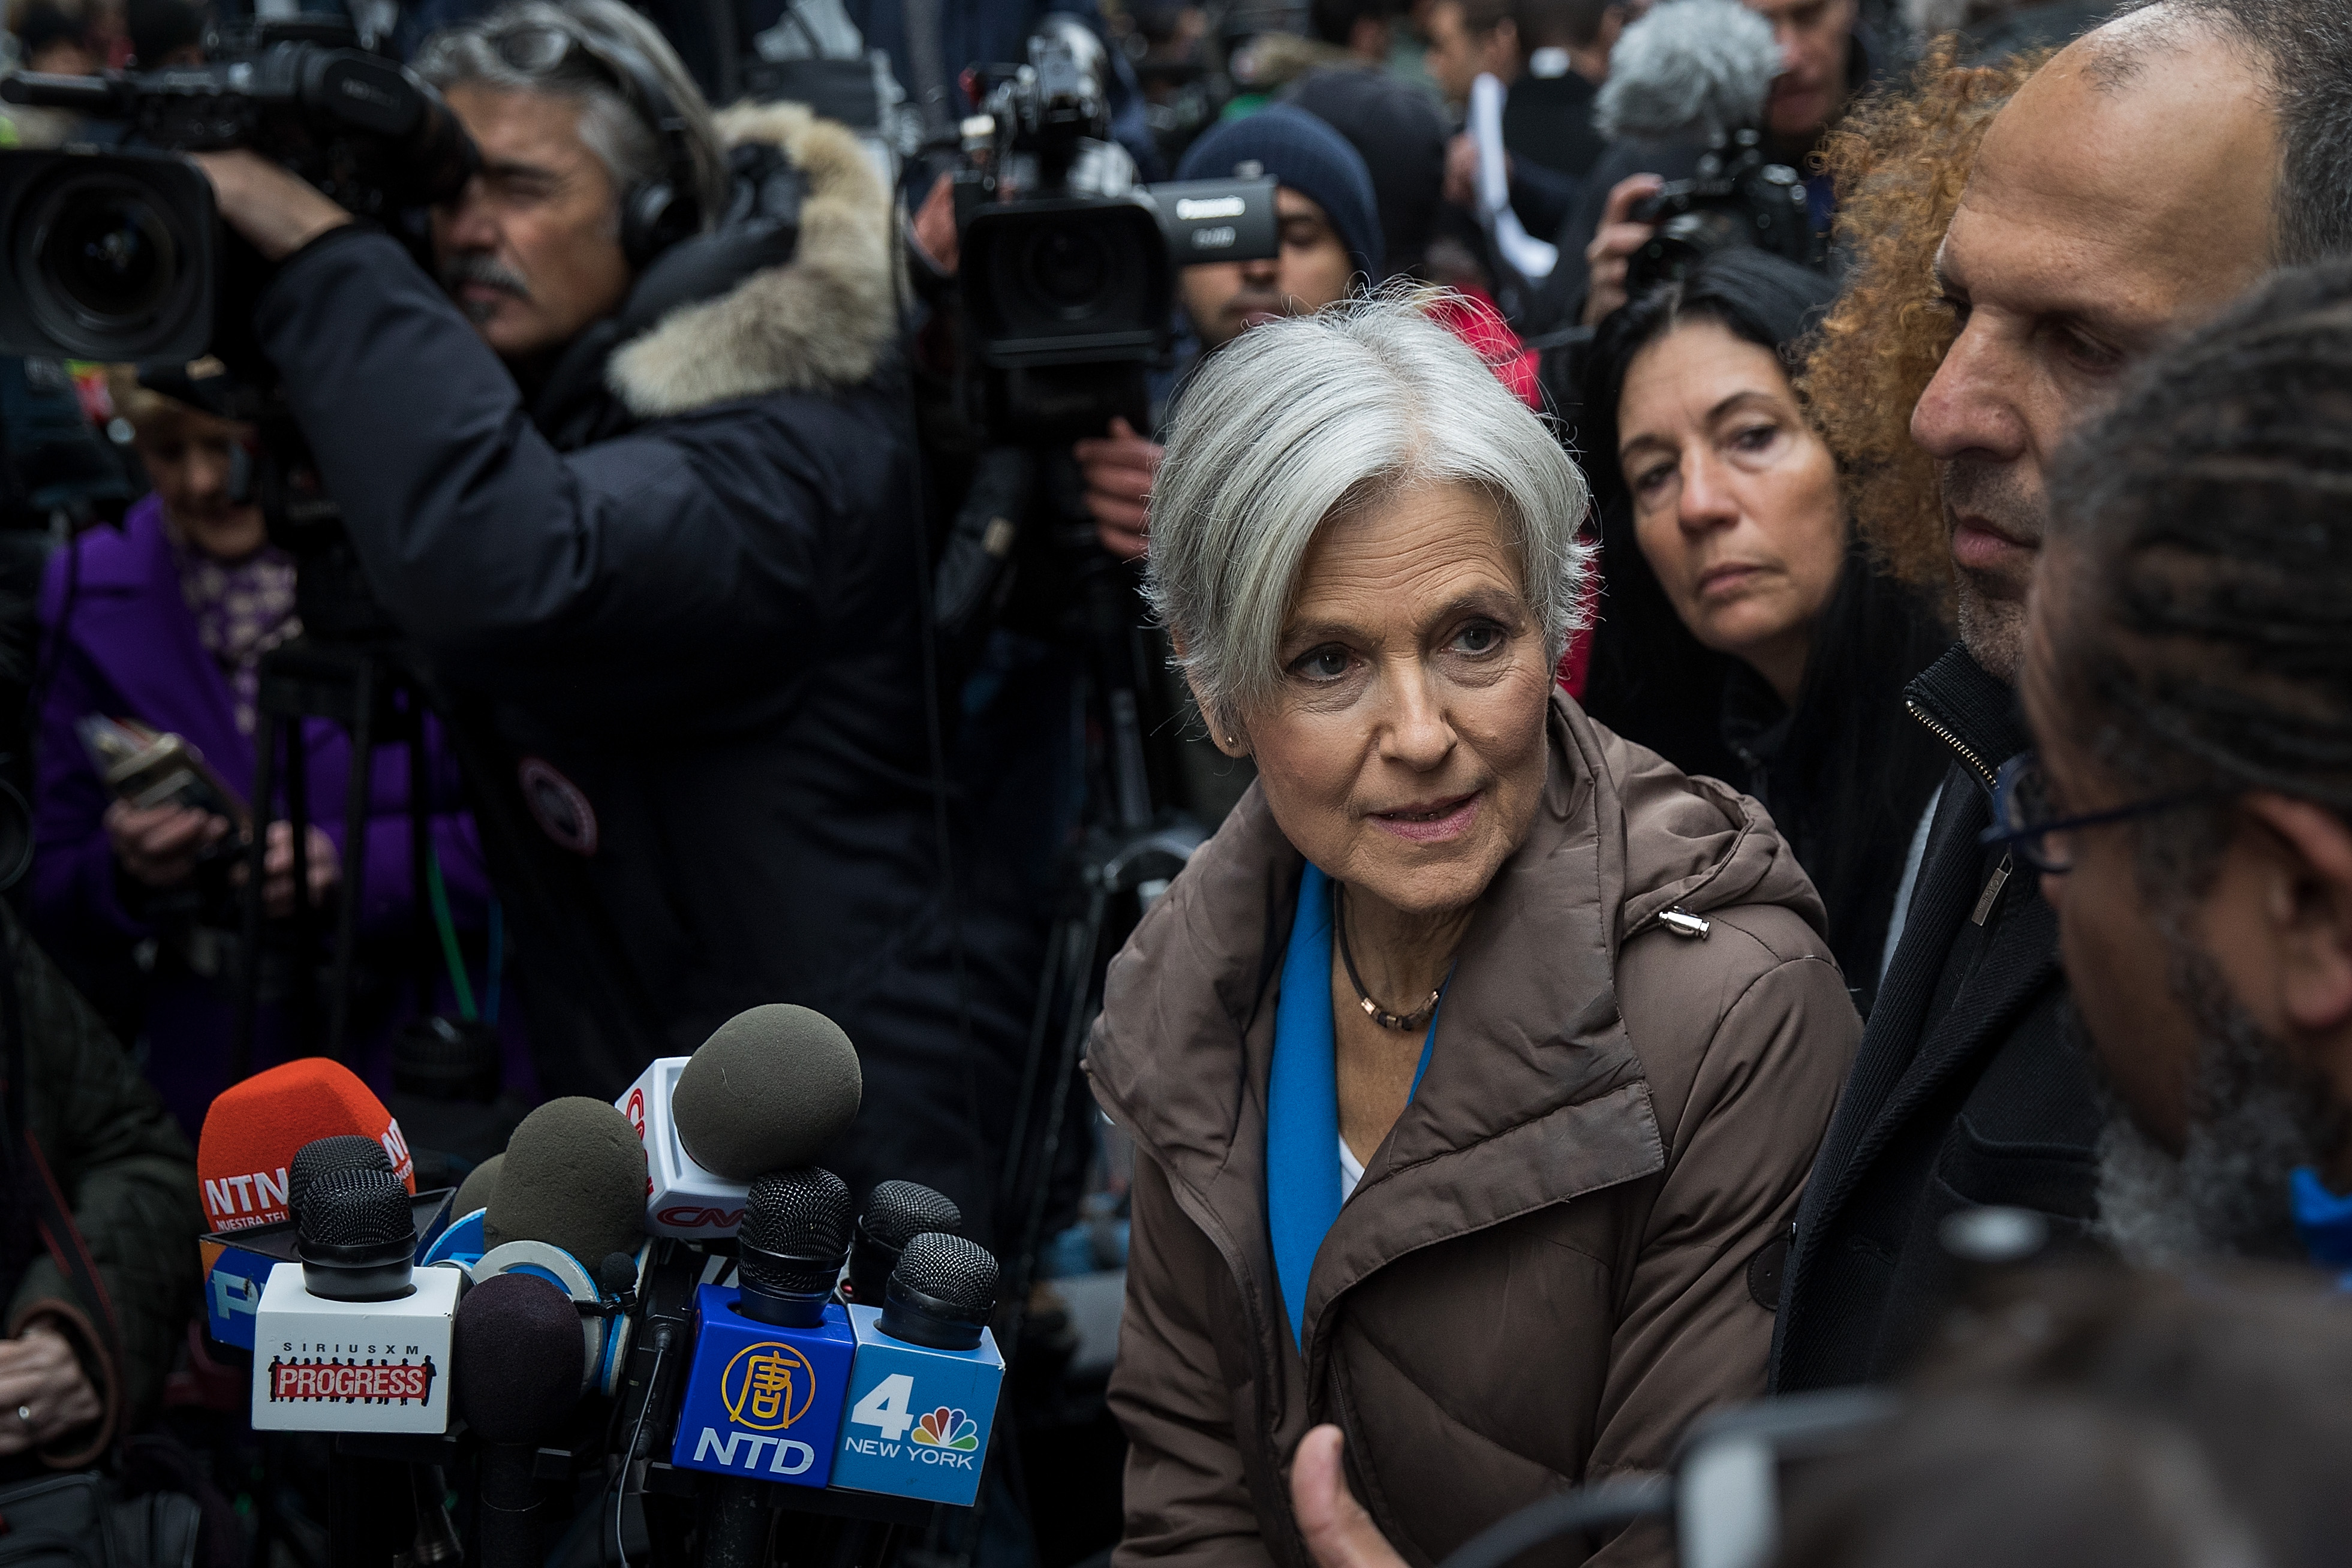 Who is Jill Stein? Nina Turner Attacked for Historic Support of Green Party Candidate - Newsweek